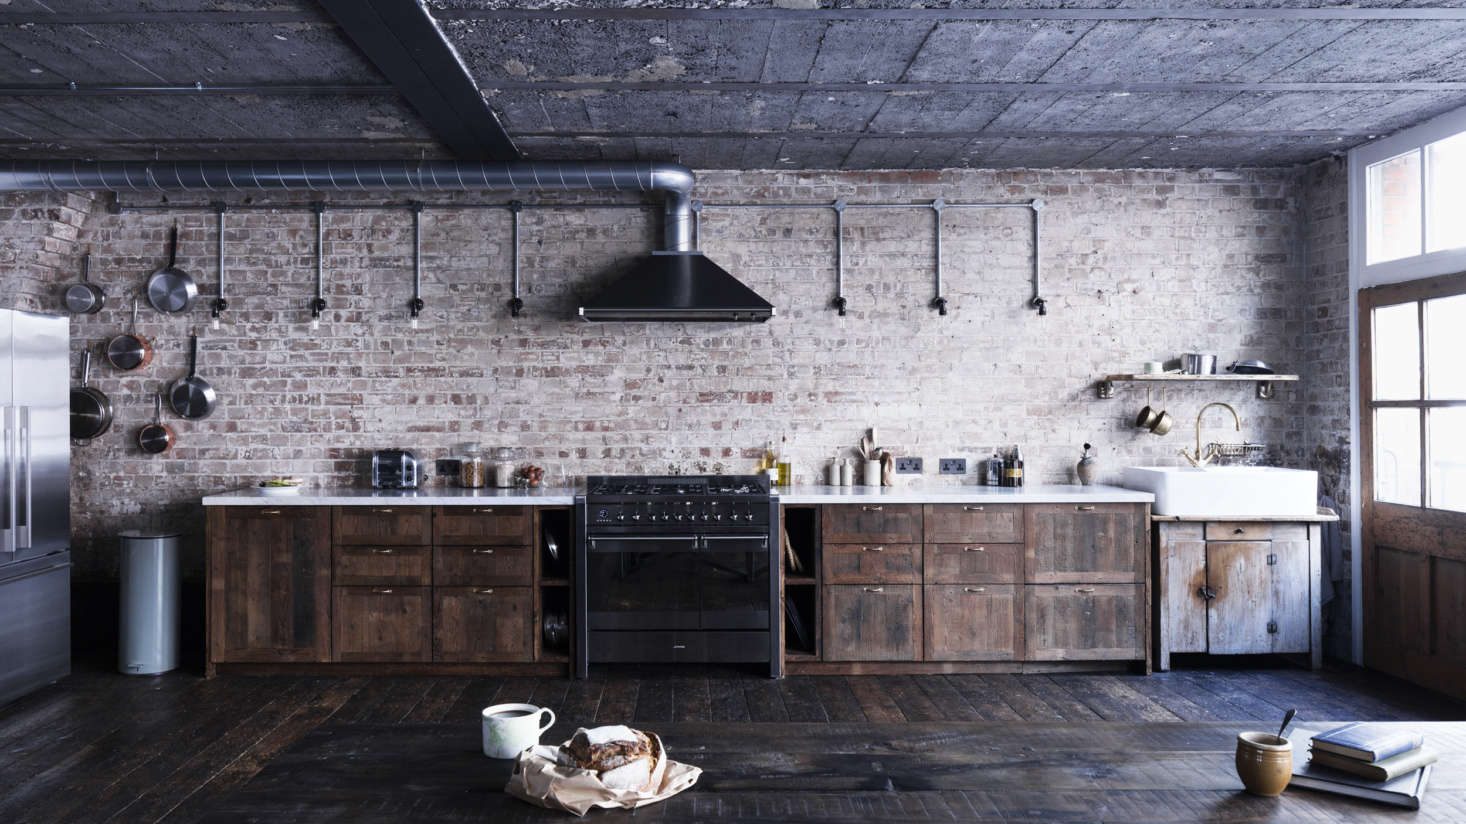 Most of us are familiar with standard rectangular, red bricks, which add an industrial-rustic look in interiors. For more modern installations, brick also comes in several shapes and colors.